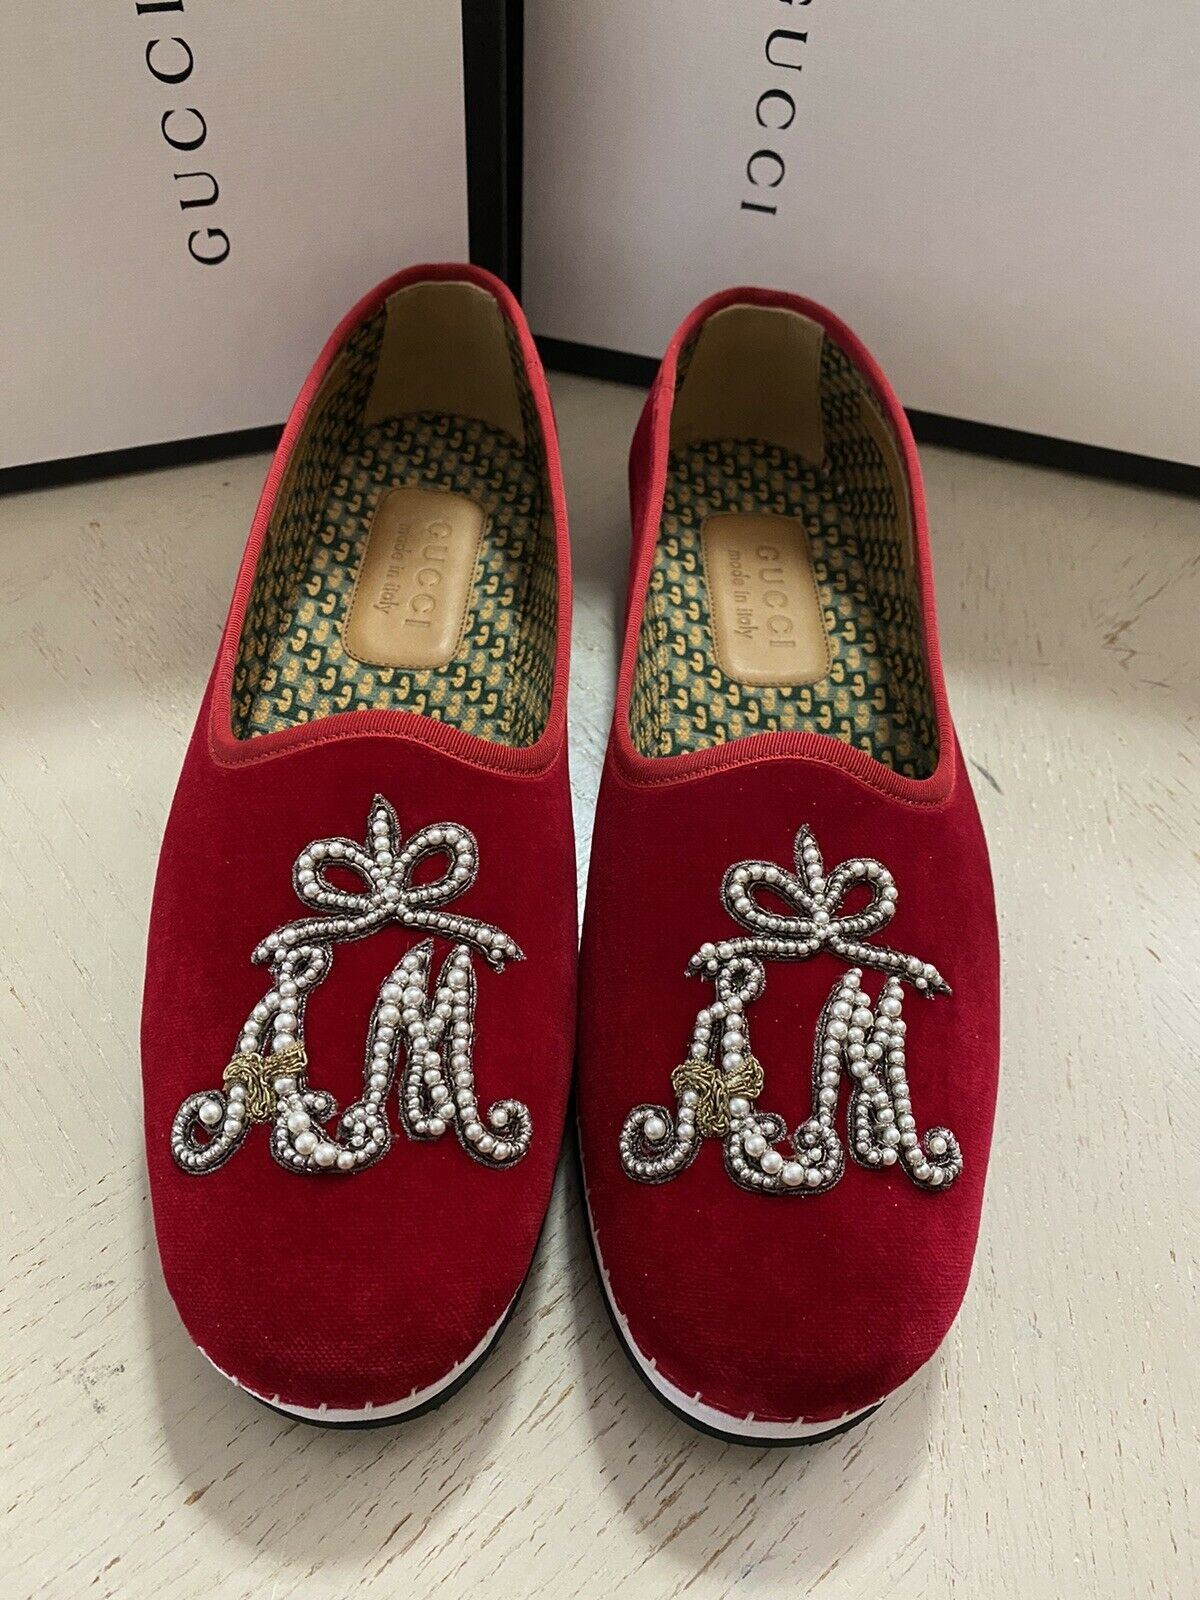 NIB $980 Gucci Mens Velvet Loafers Shoes Red 10.5 US / 9.5 UK